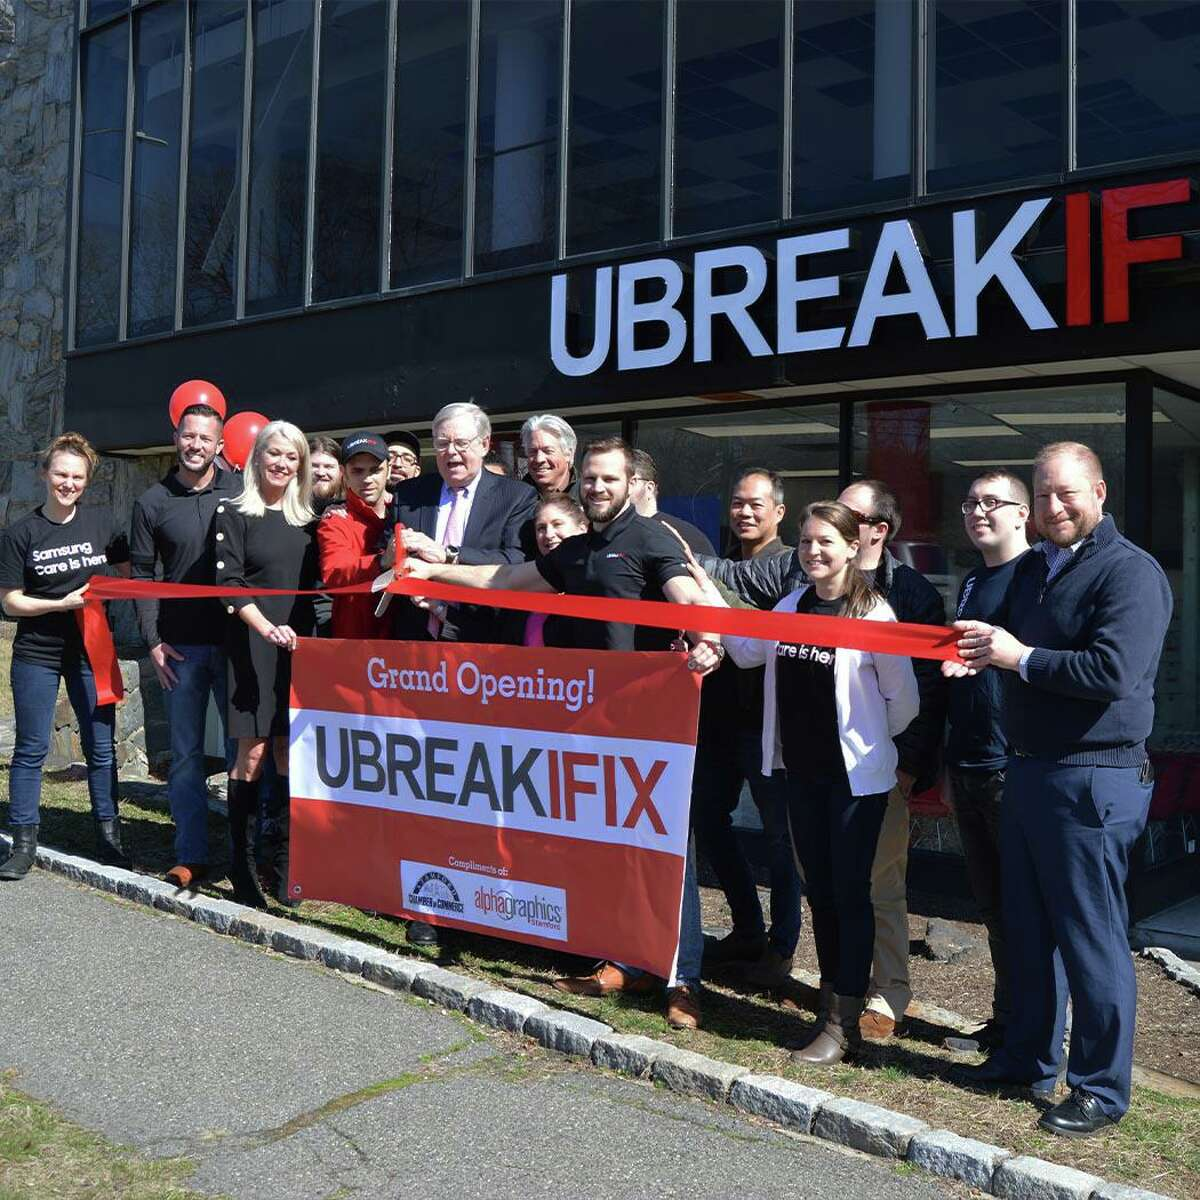 UbreakiFix employees and city officials attended a grand opening for the new store at 123 High Ridge Road in Stamford, Conn., on Thursday, March 5, 2020.